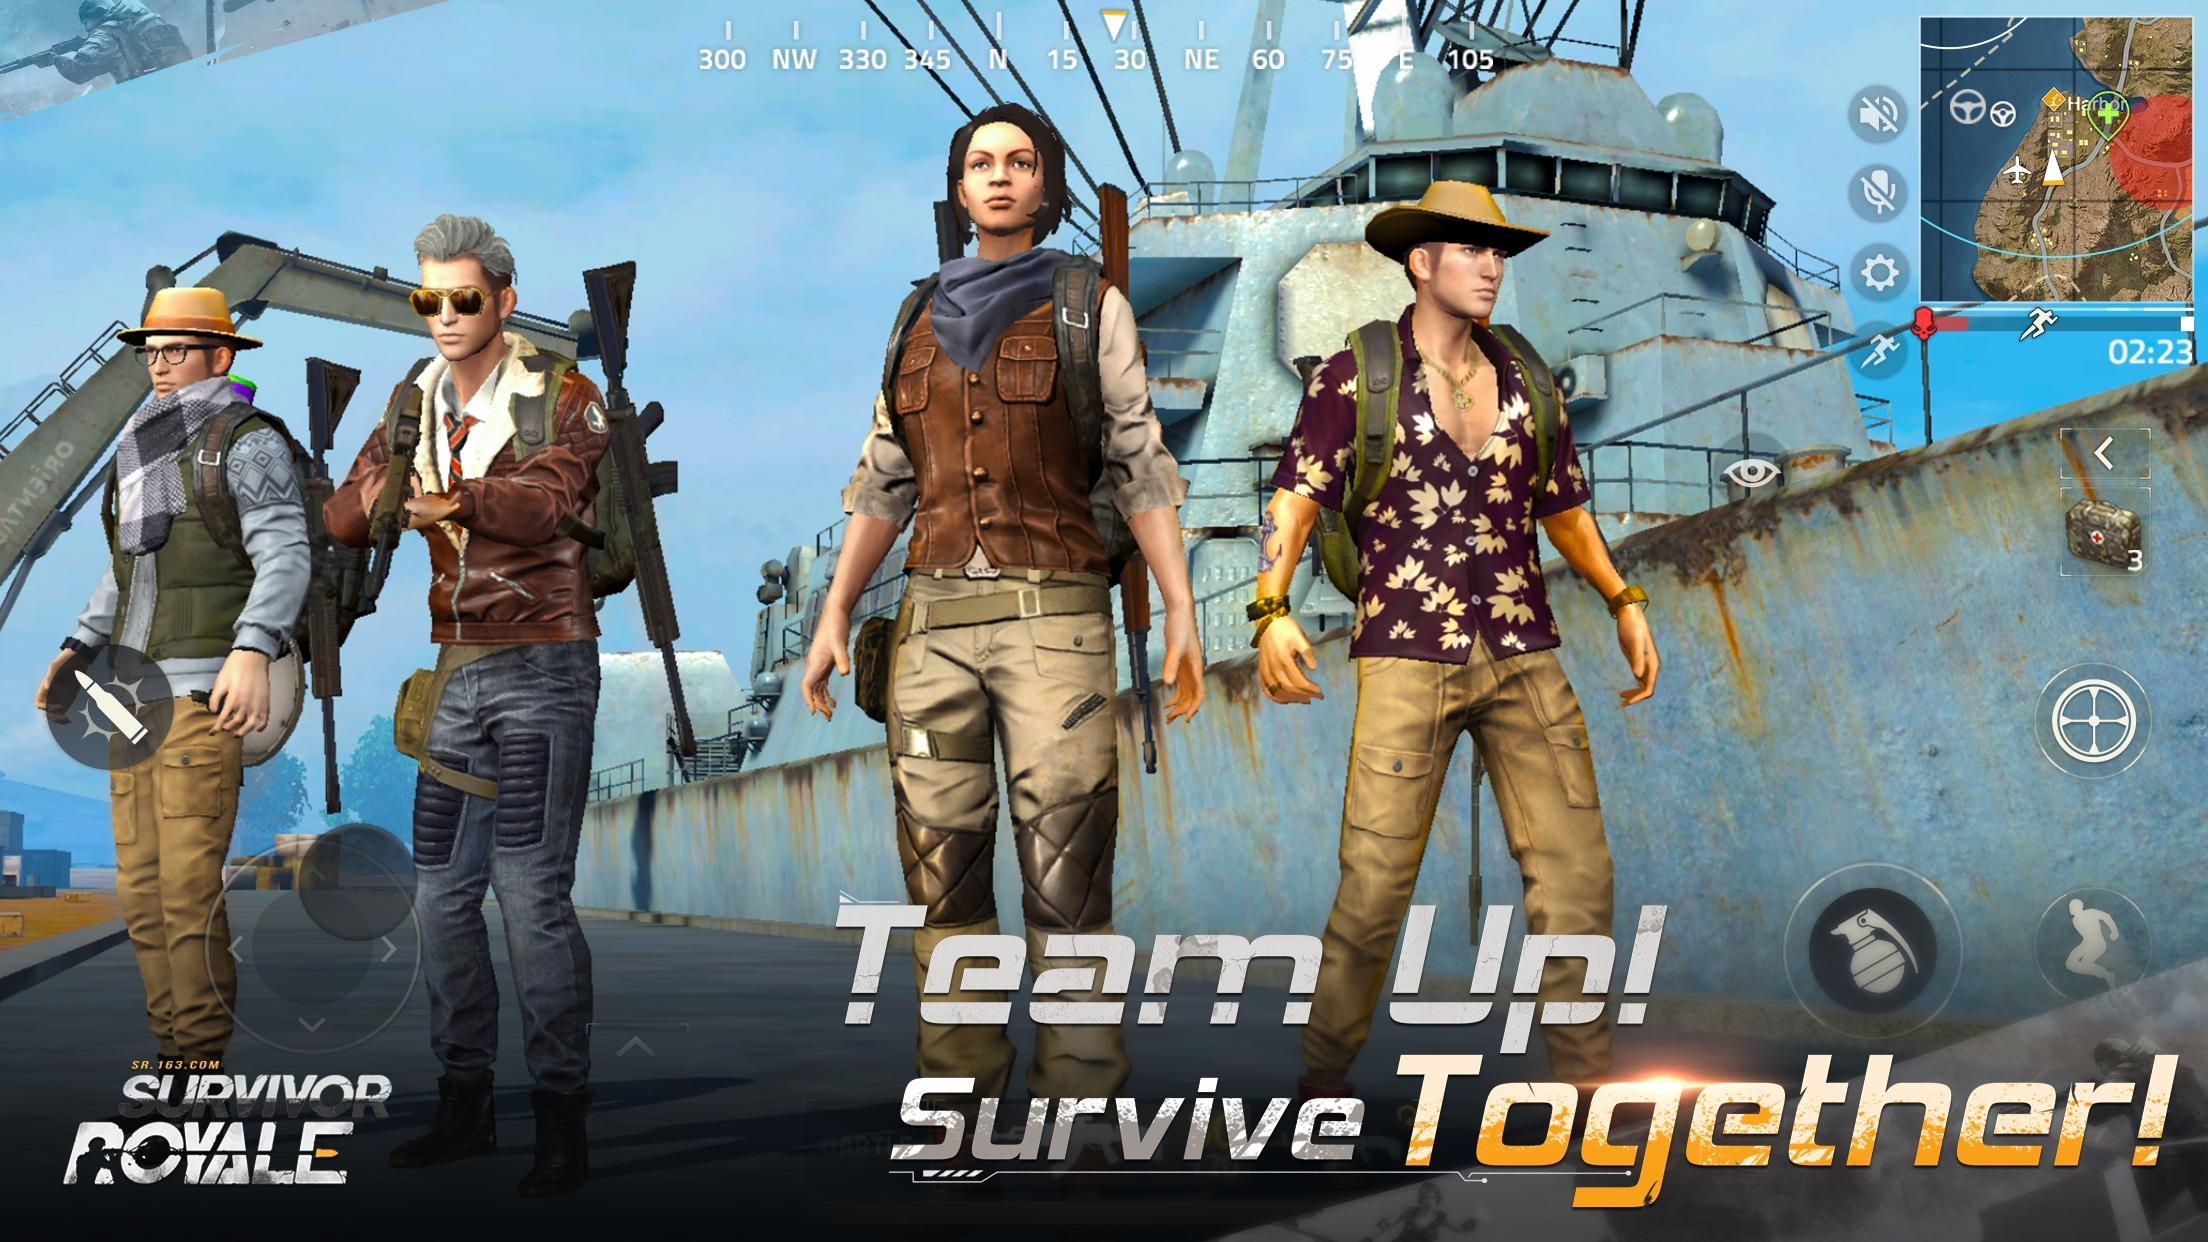 Survivor Royale for Android - APK Download